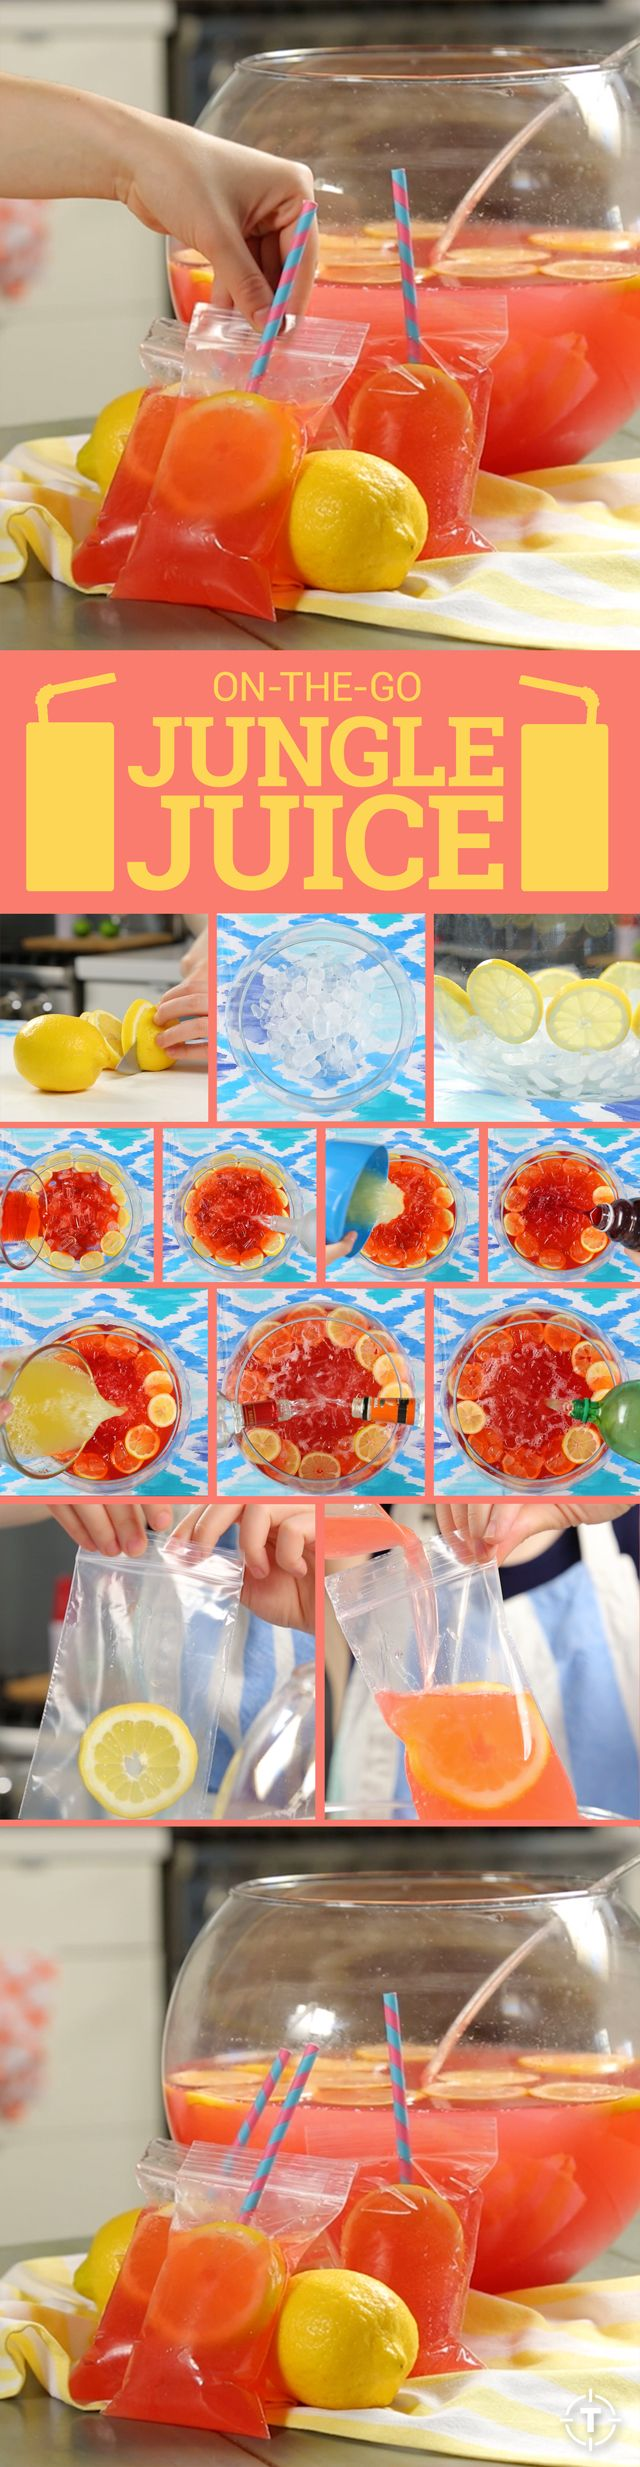 We just came up with the most amazing boozed-up DIY ever. Perfect for the summer.